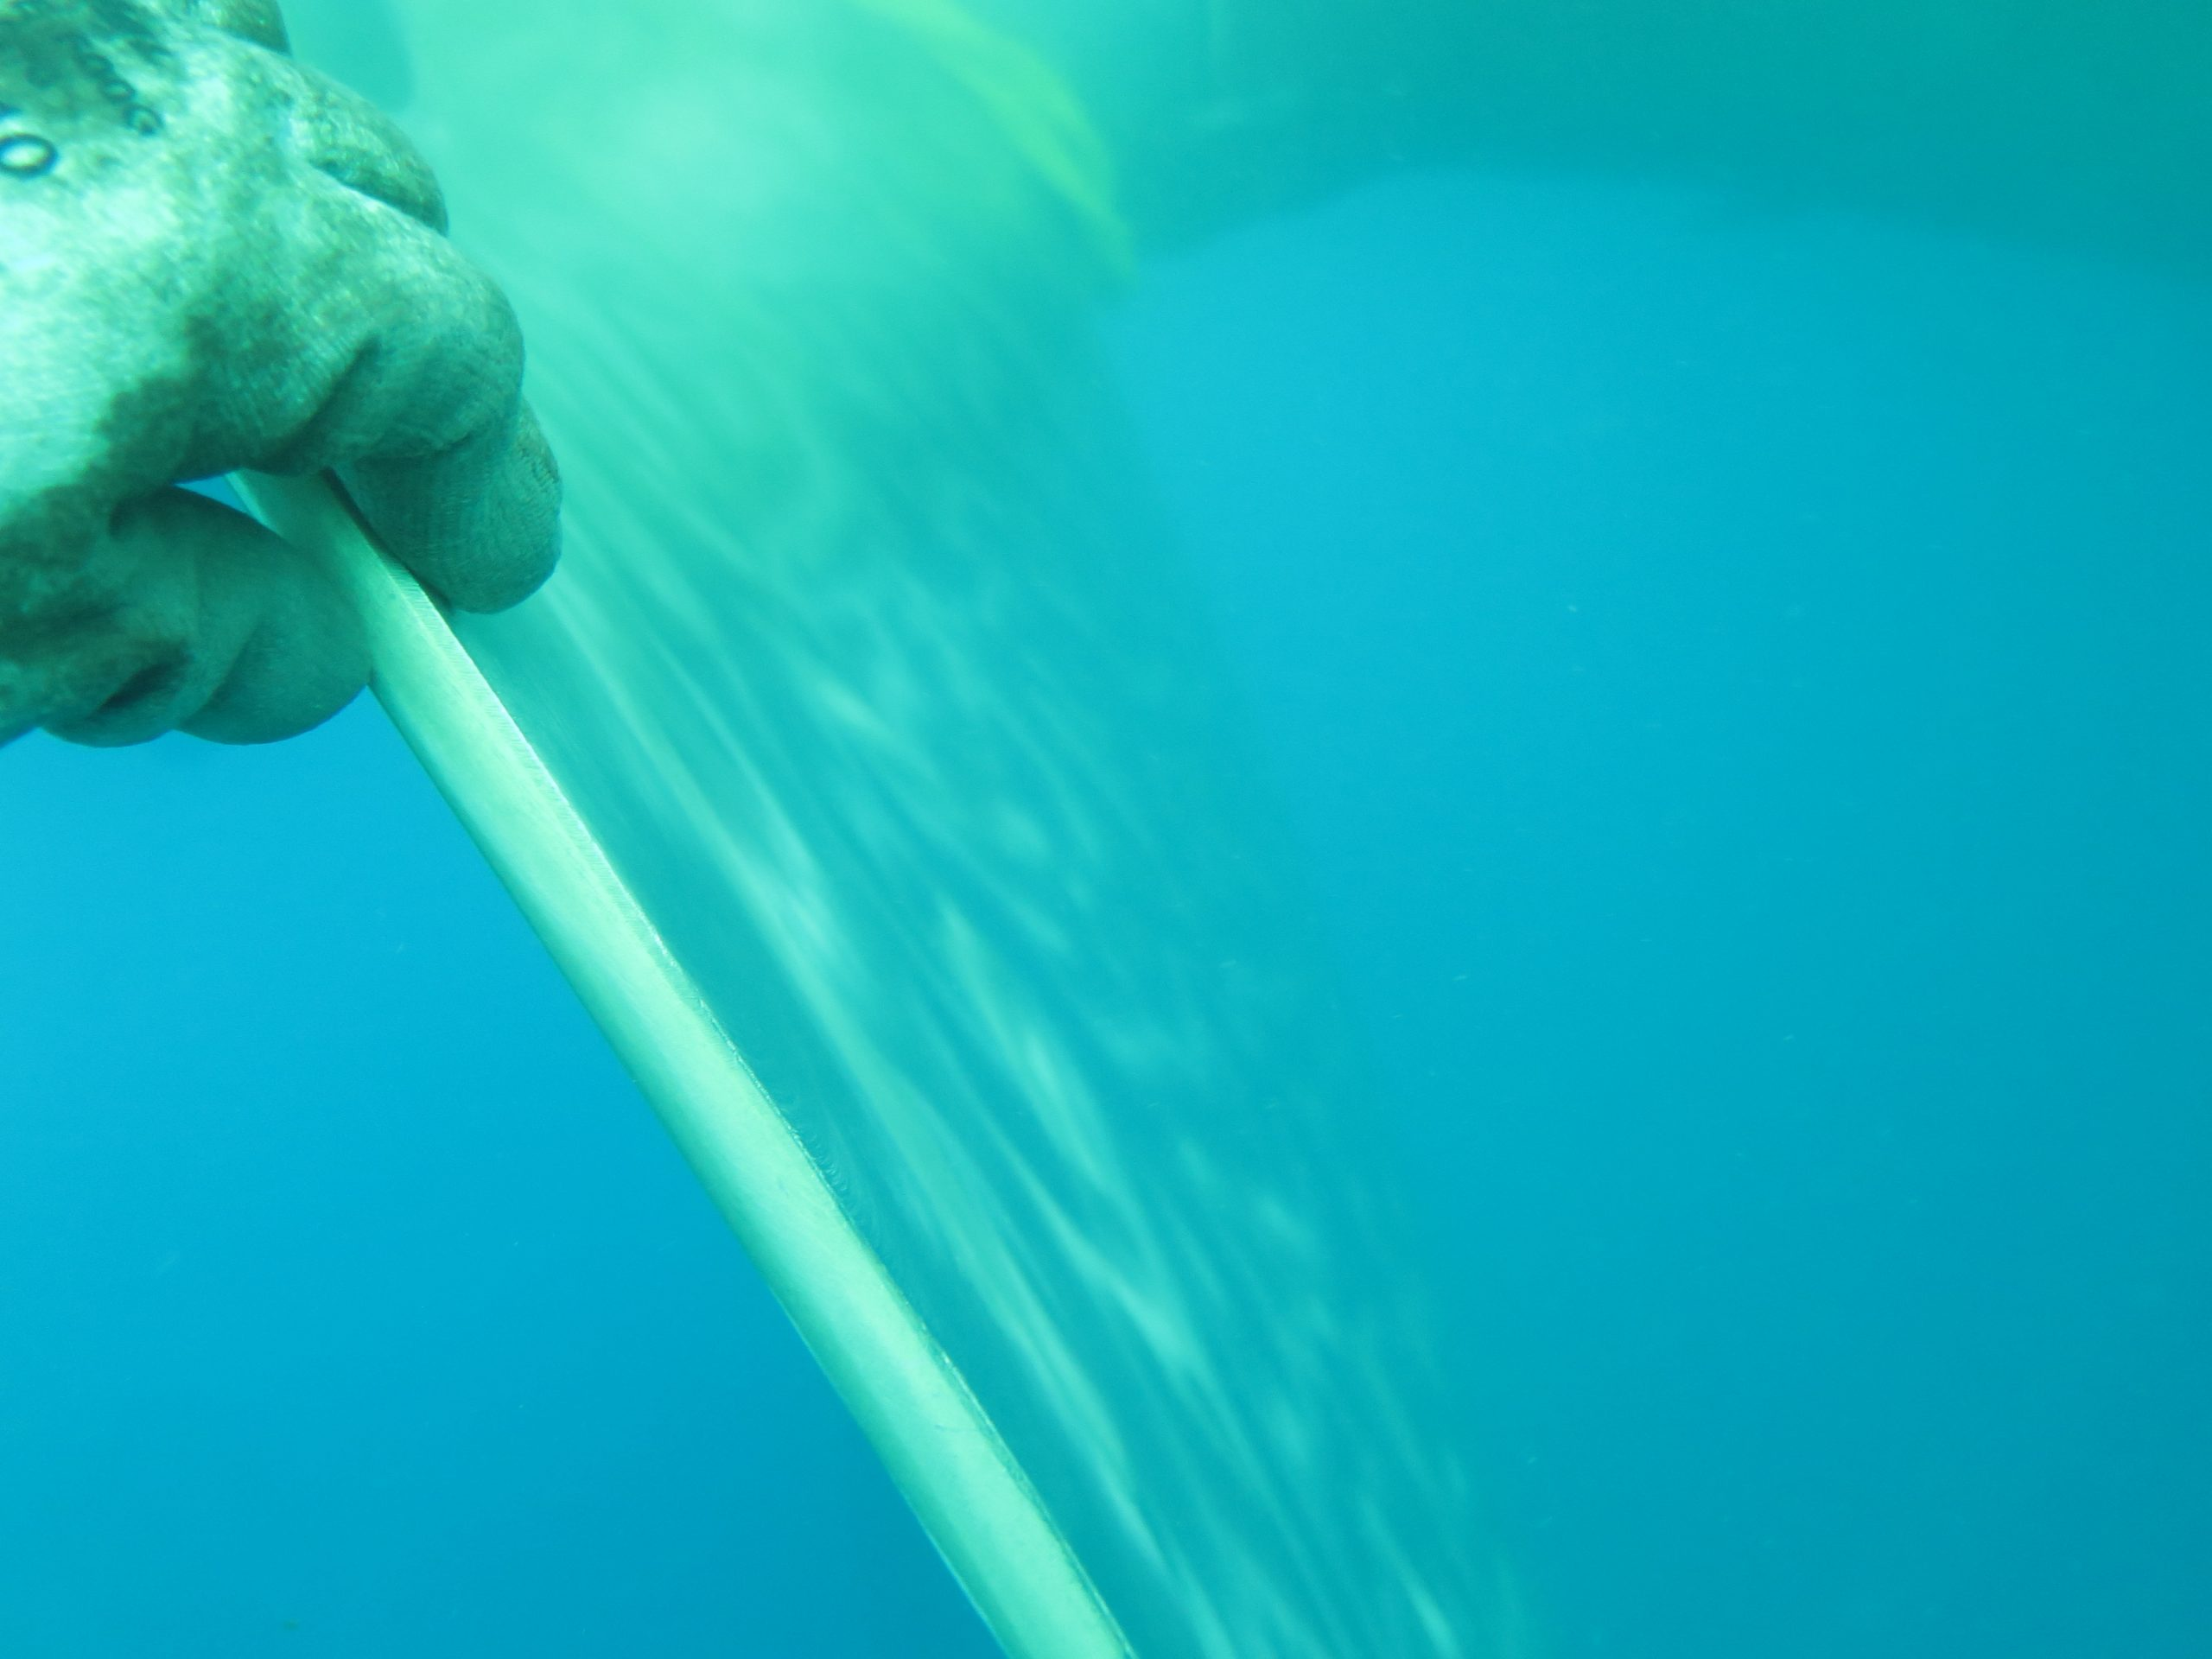 Diver shows the propeller during propeller cleaning